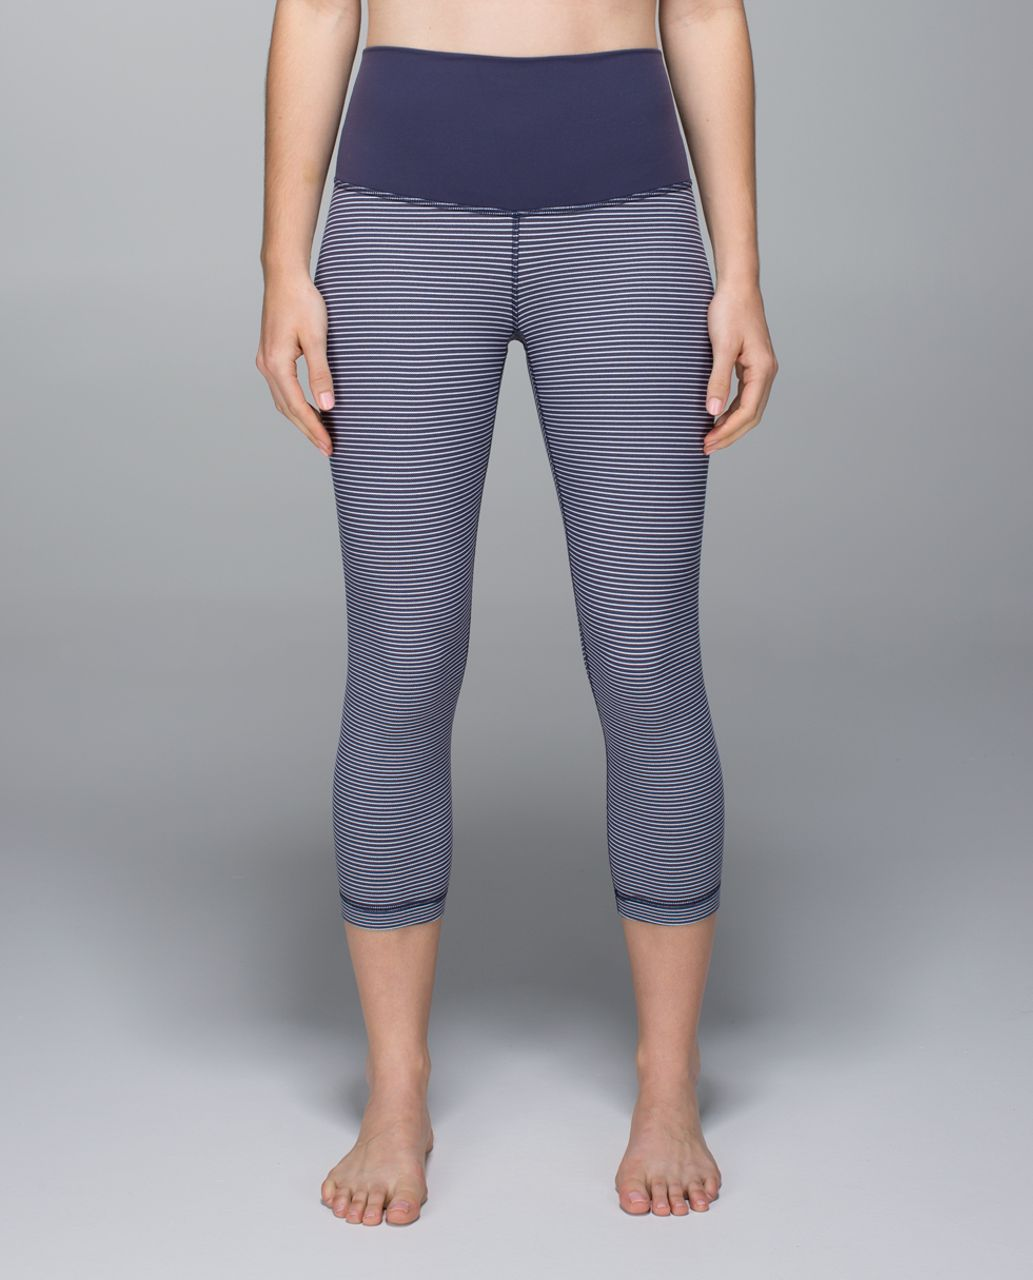 Lululemon Wunder Under Crop *Full-On Luon (Roll Down) - Super Stripe Cadet Blue White / White / Cadet Blue